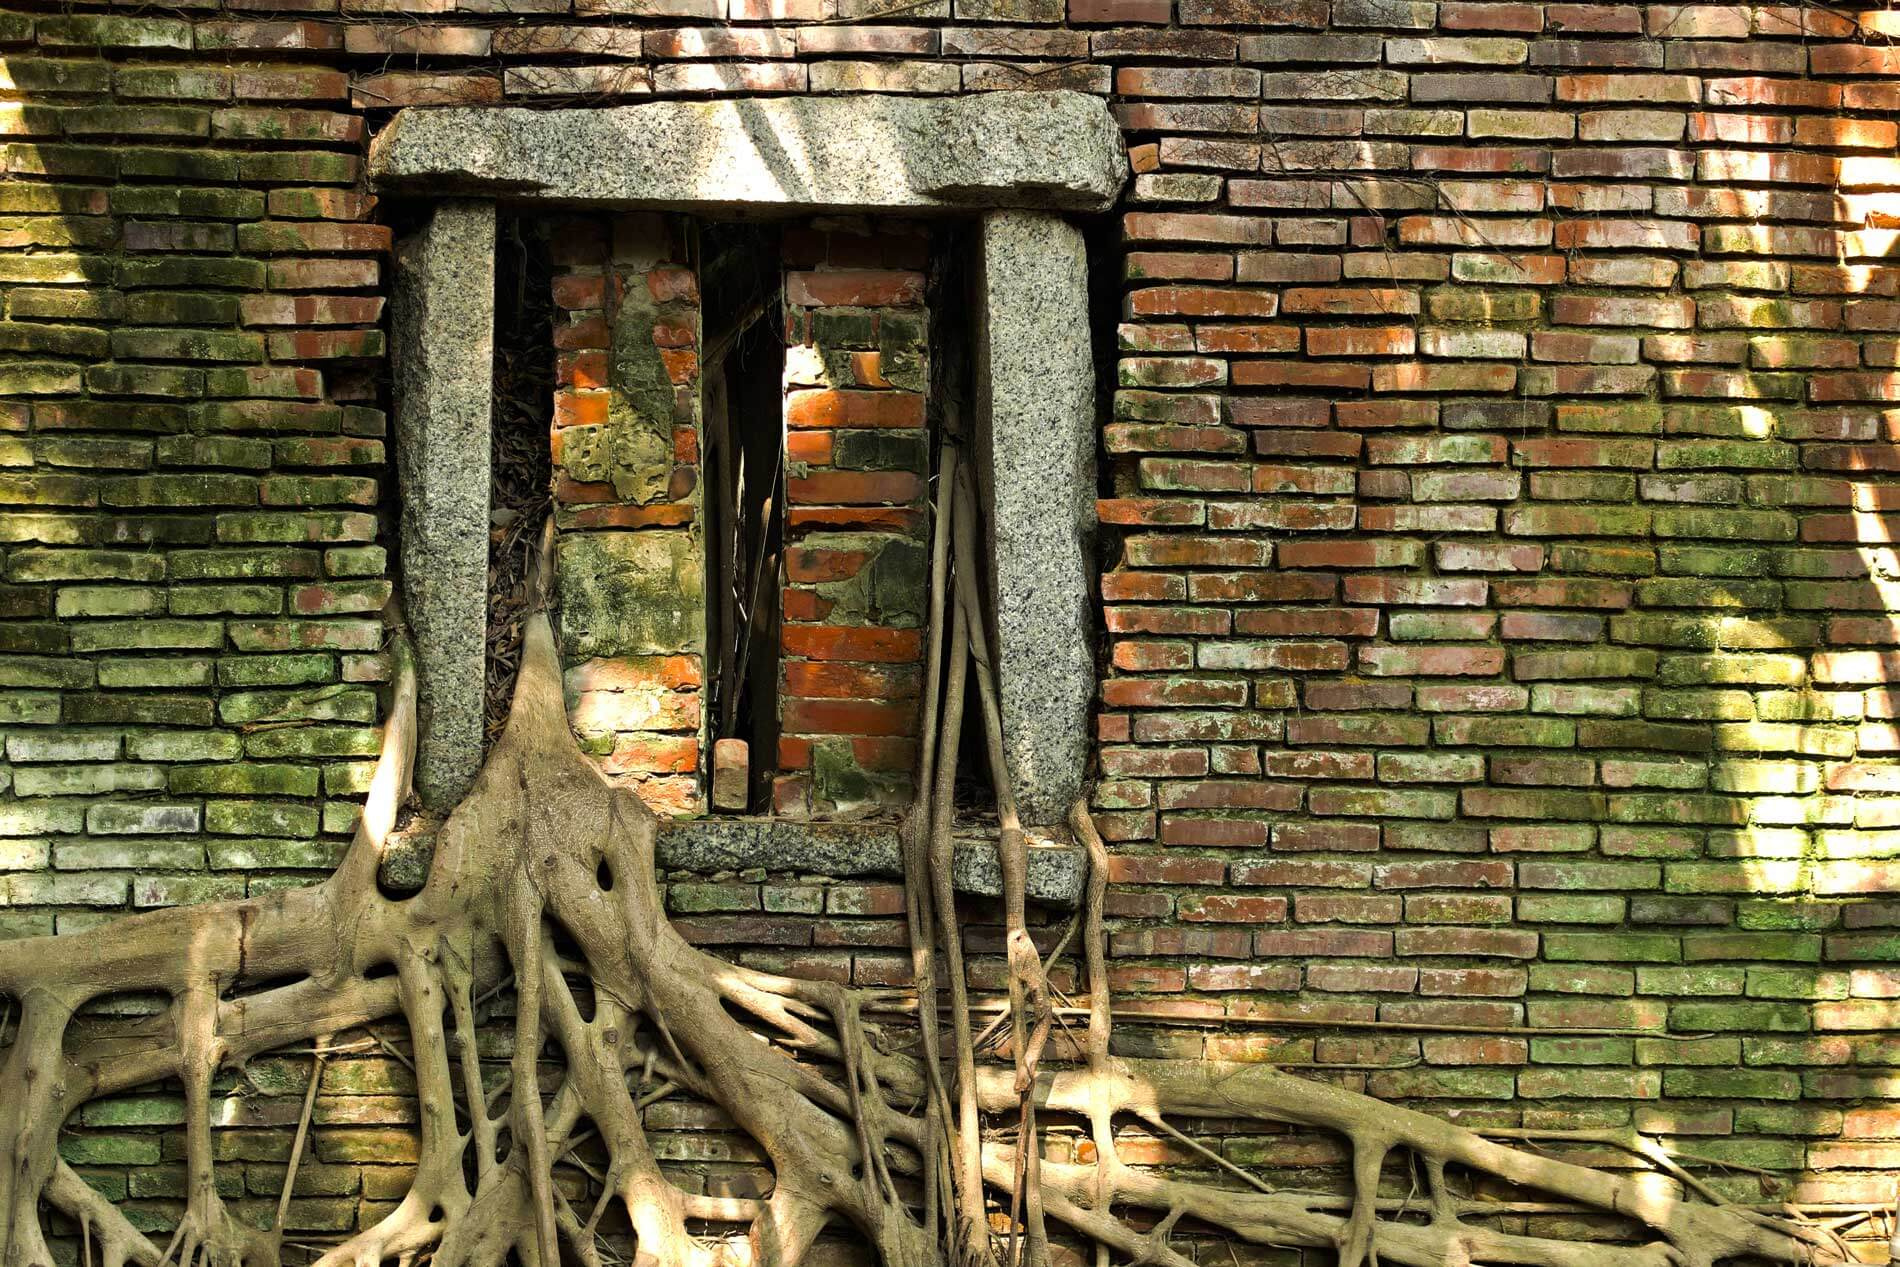 Brick Window in Roots